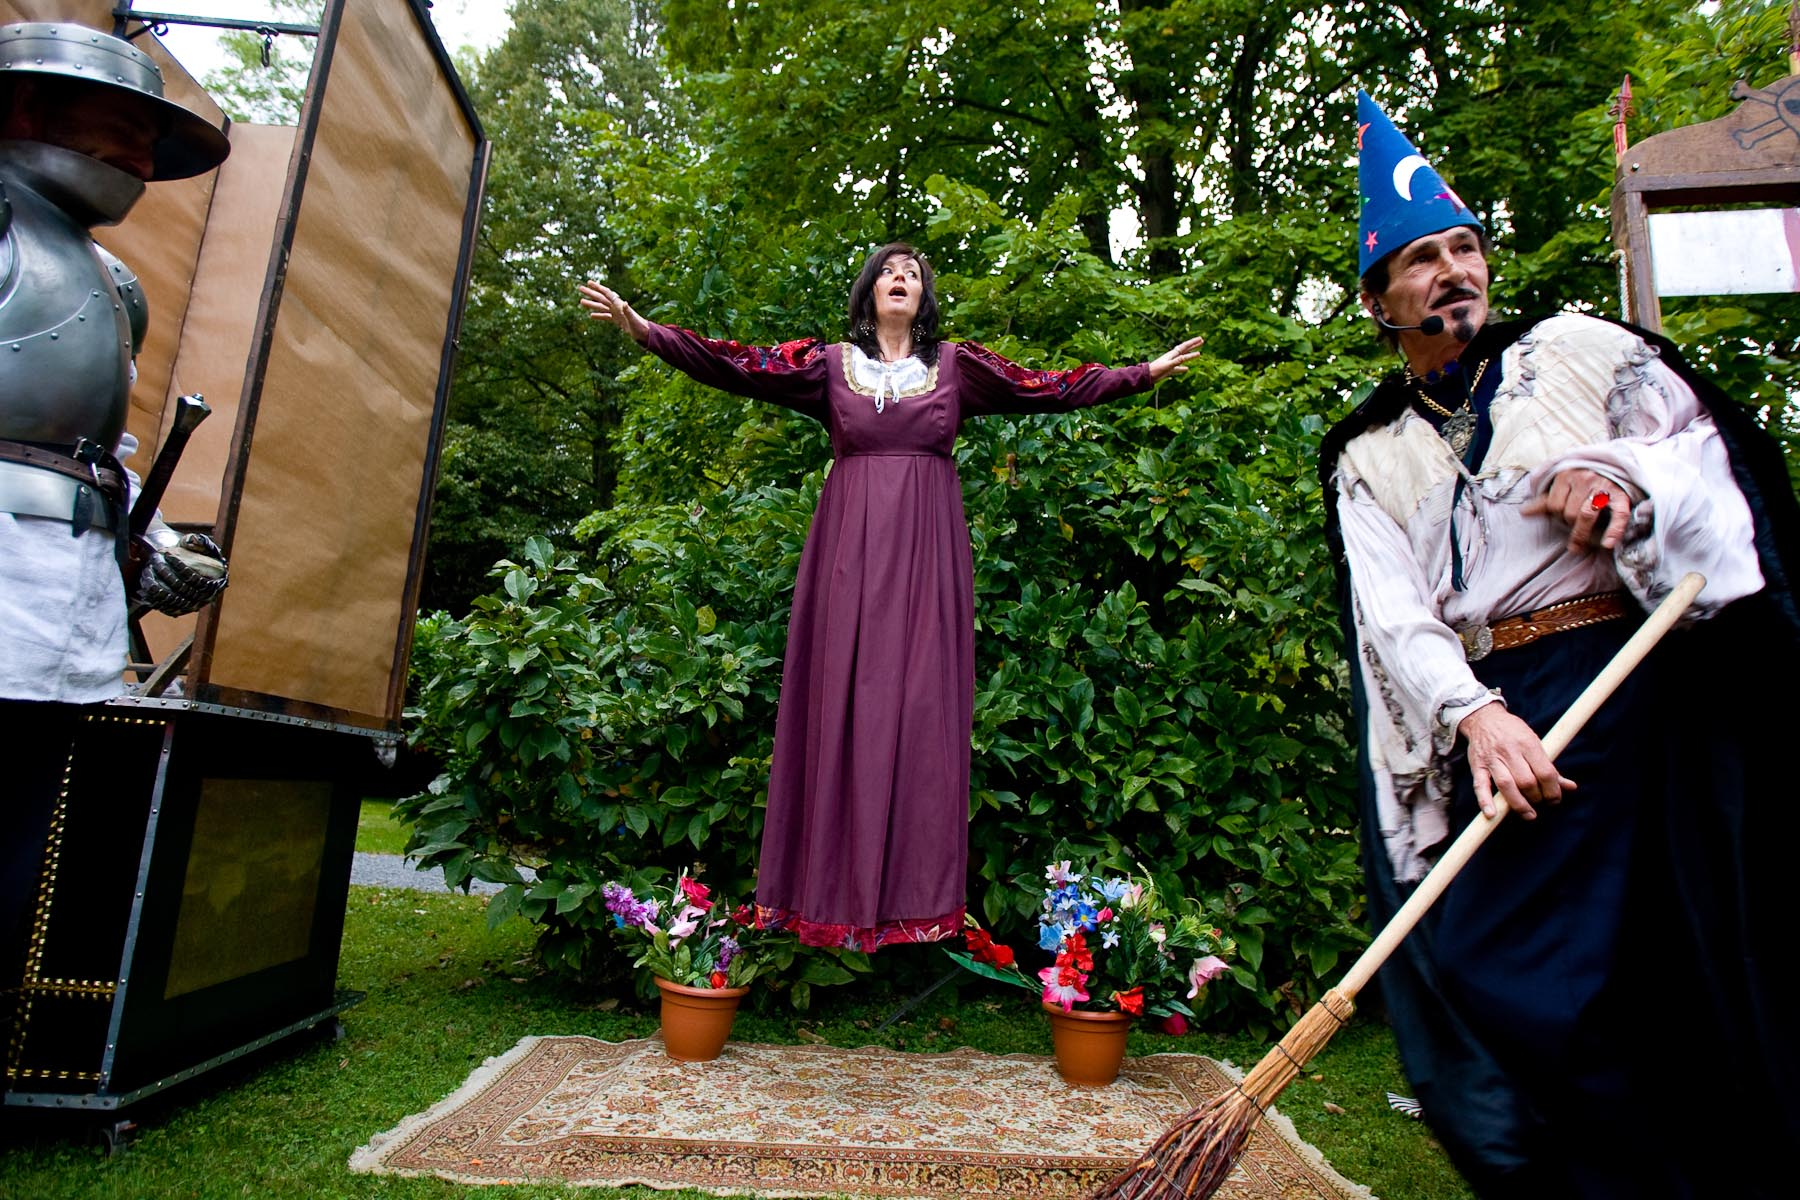 A magician performs during a Medieval event in Otočec, Slovenia, on September 21, 2008. There is no Middle Ages without witches. In a performance by a magician called Saturn, a witch is identified and burnt for the audience, old and young.